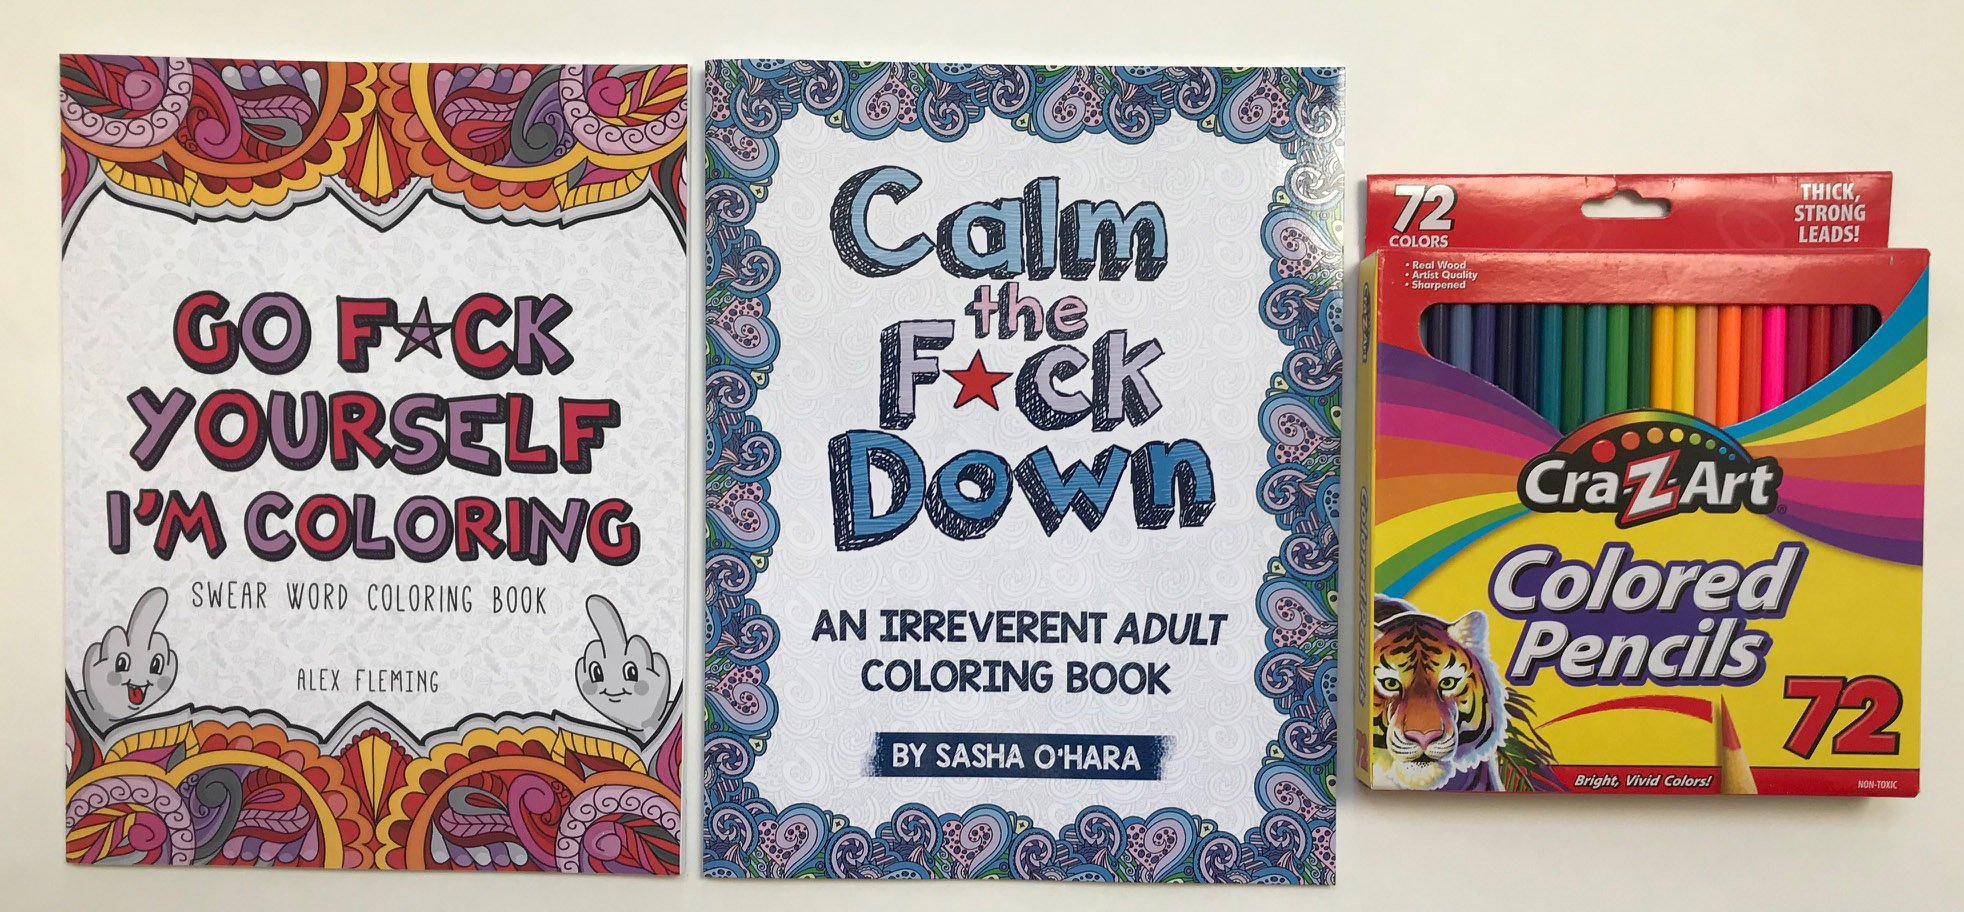 Adult Coloring Book and Coloring Pencils Bundle: Go F Yourself I'm Coloring Calm The F Down and 72 Colored Pencils Set - Awesome Bundle